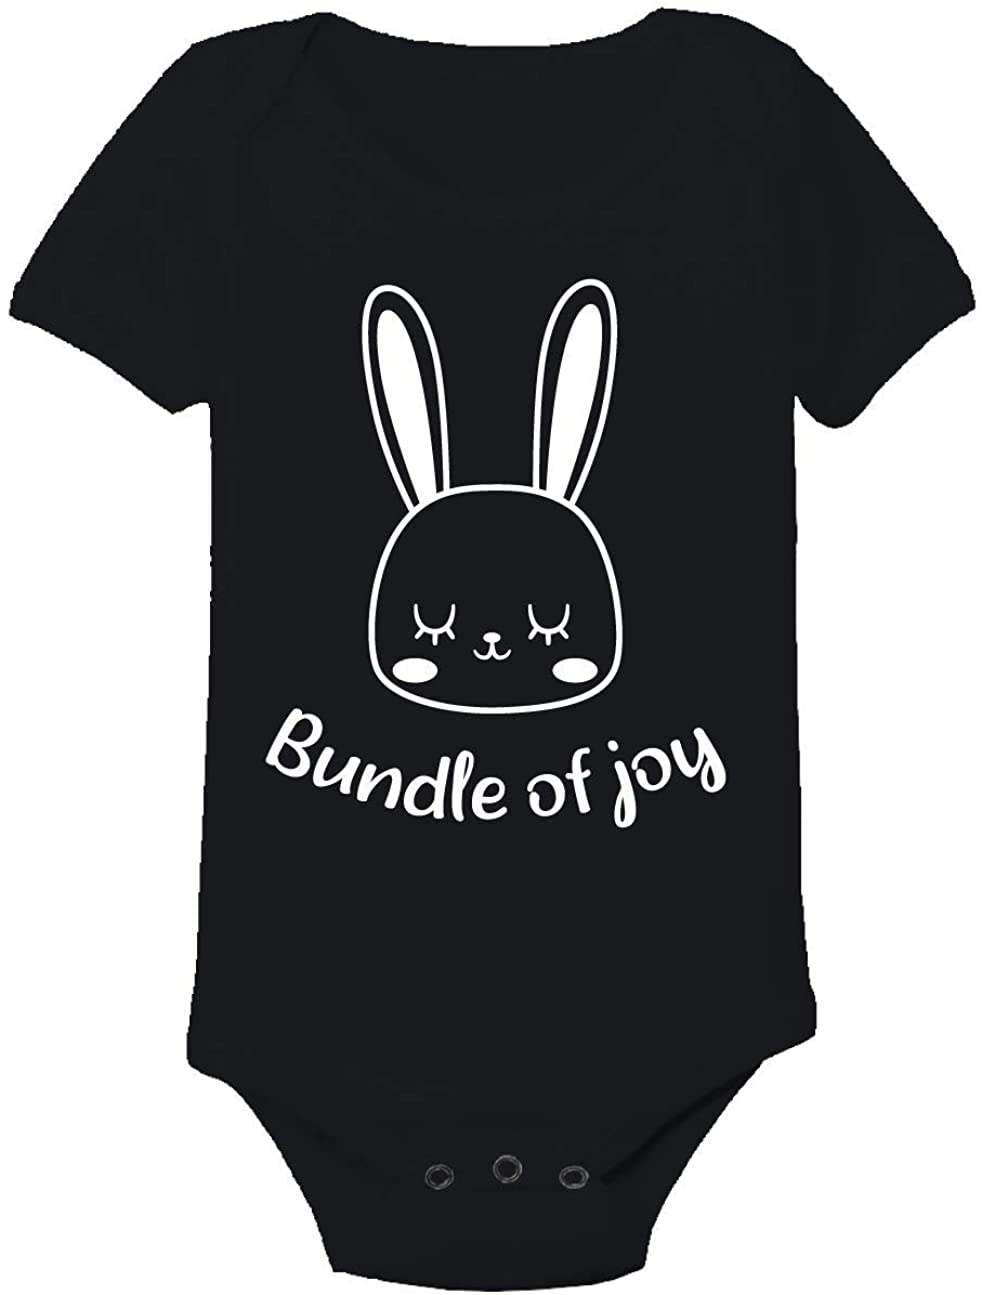 All Things Valuable One-Piece Baby Romper Bundle of Joy Outfit/Babies Toddler Fashion Clothes